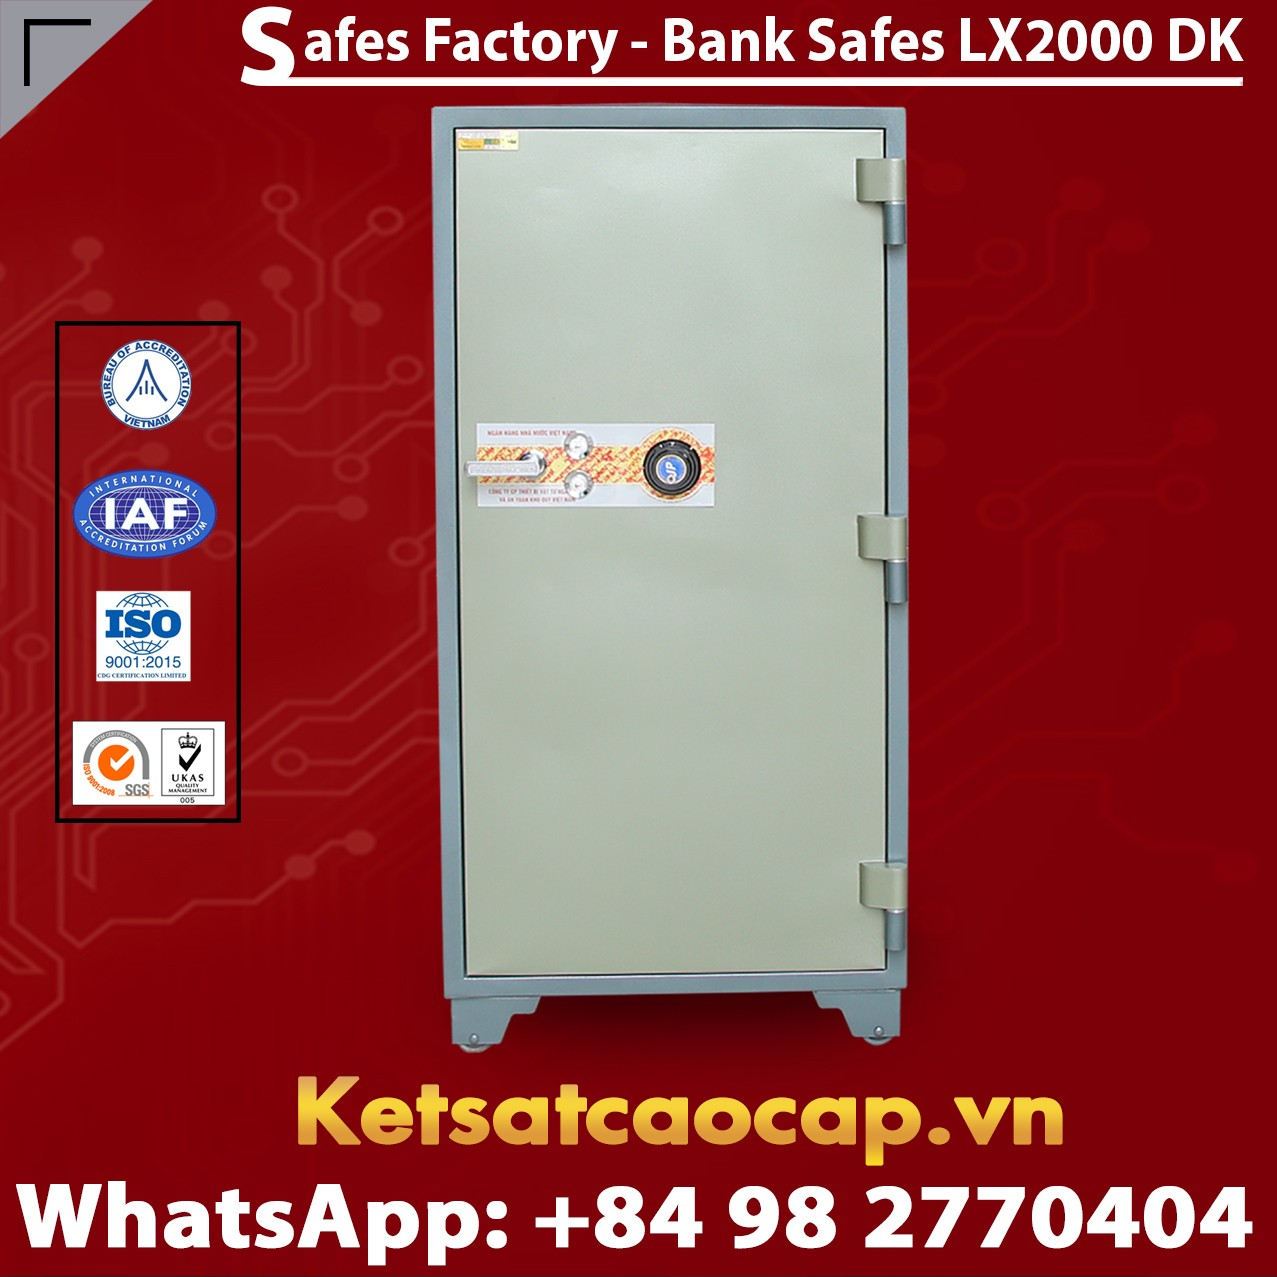 Bank Safes LX2000 DK Customized Design Mechanical Lock System